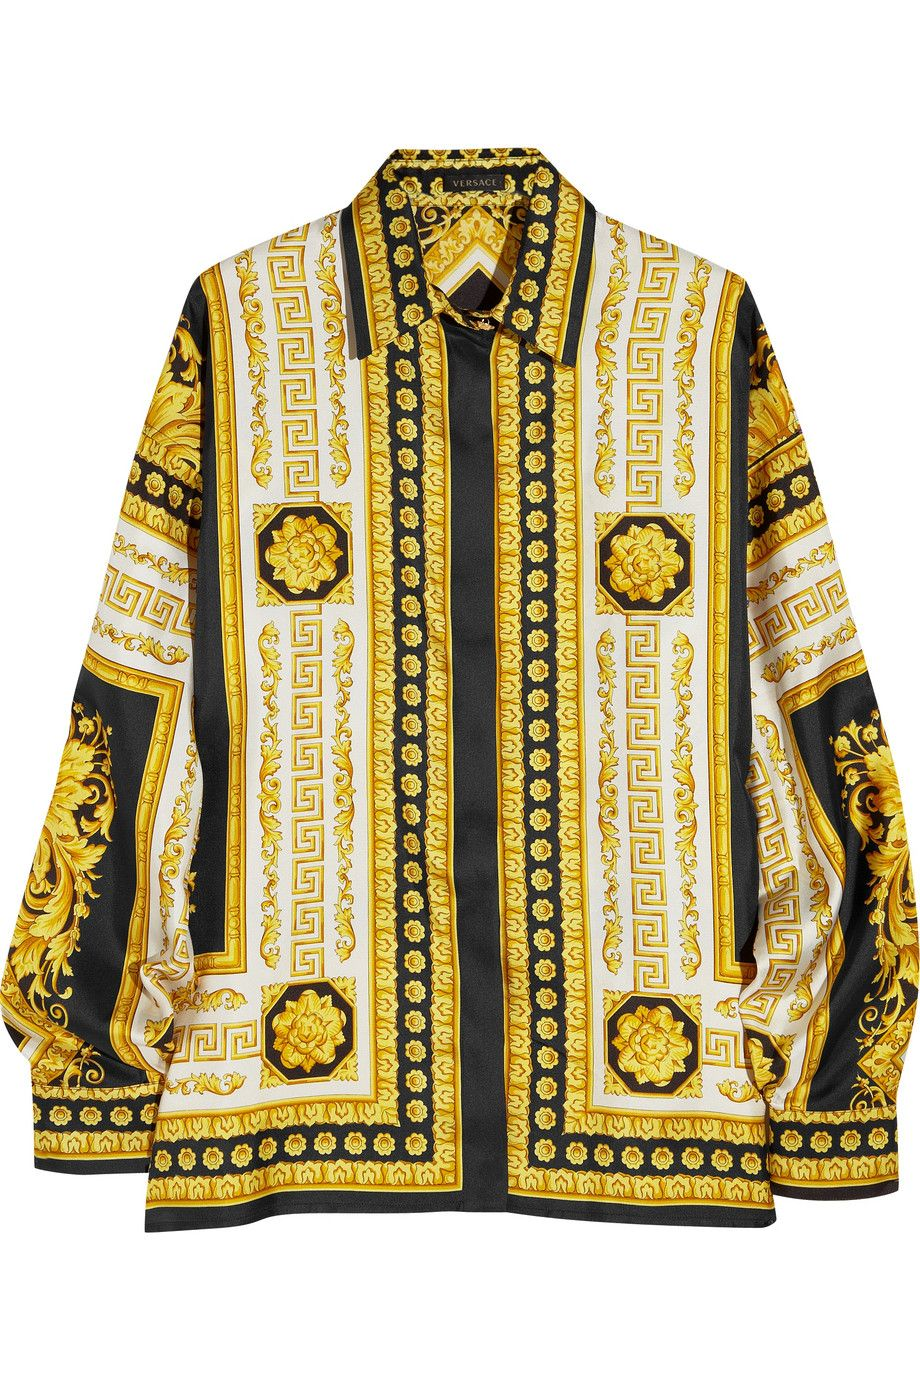 versace  very 80s Gianni    Prints, Pretty Please    Versace, Shirts ... 0af147d7fc5